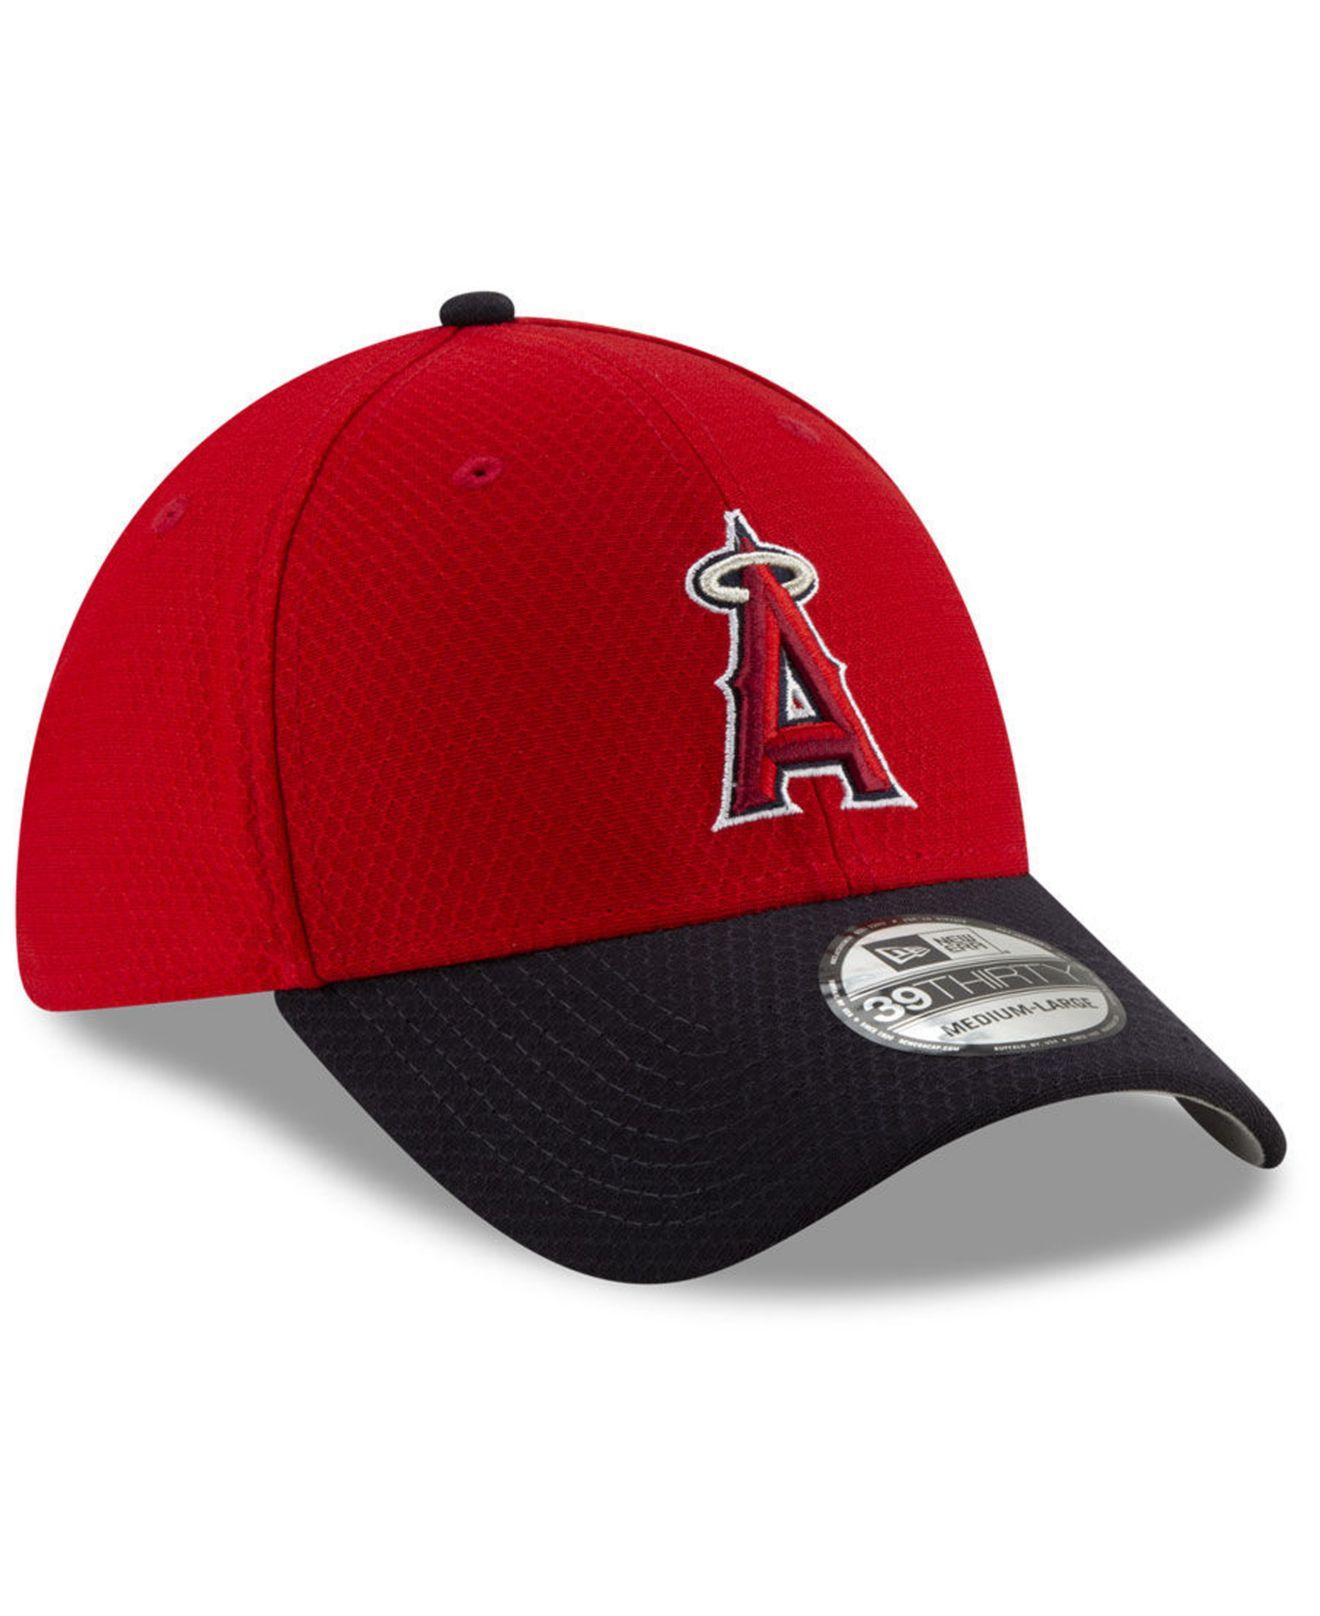 brand new 1549e dc617 ... france los angeles angels batting practice 39thirty cap for men lyst. view  fullscreen 3ee0d 68a62